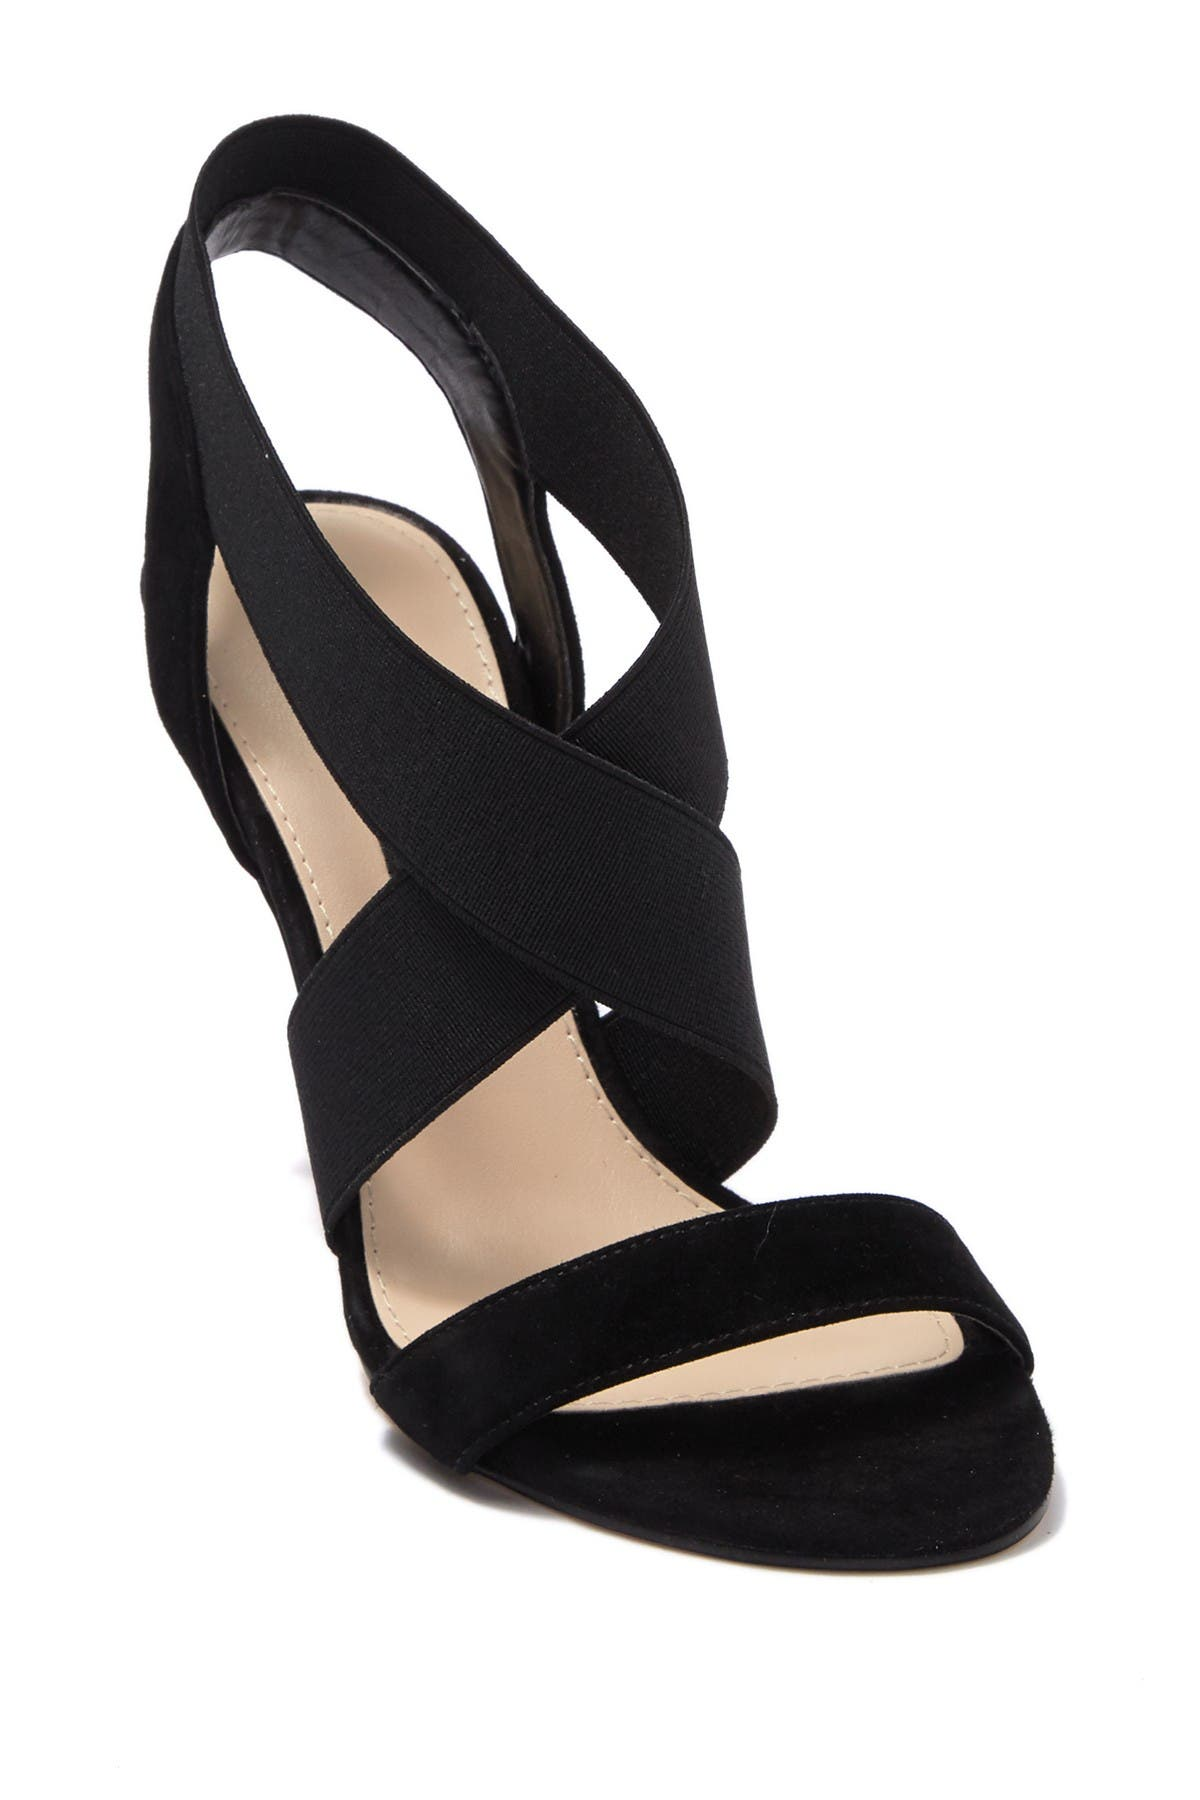 Image of Nine West Maya Sandal